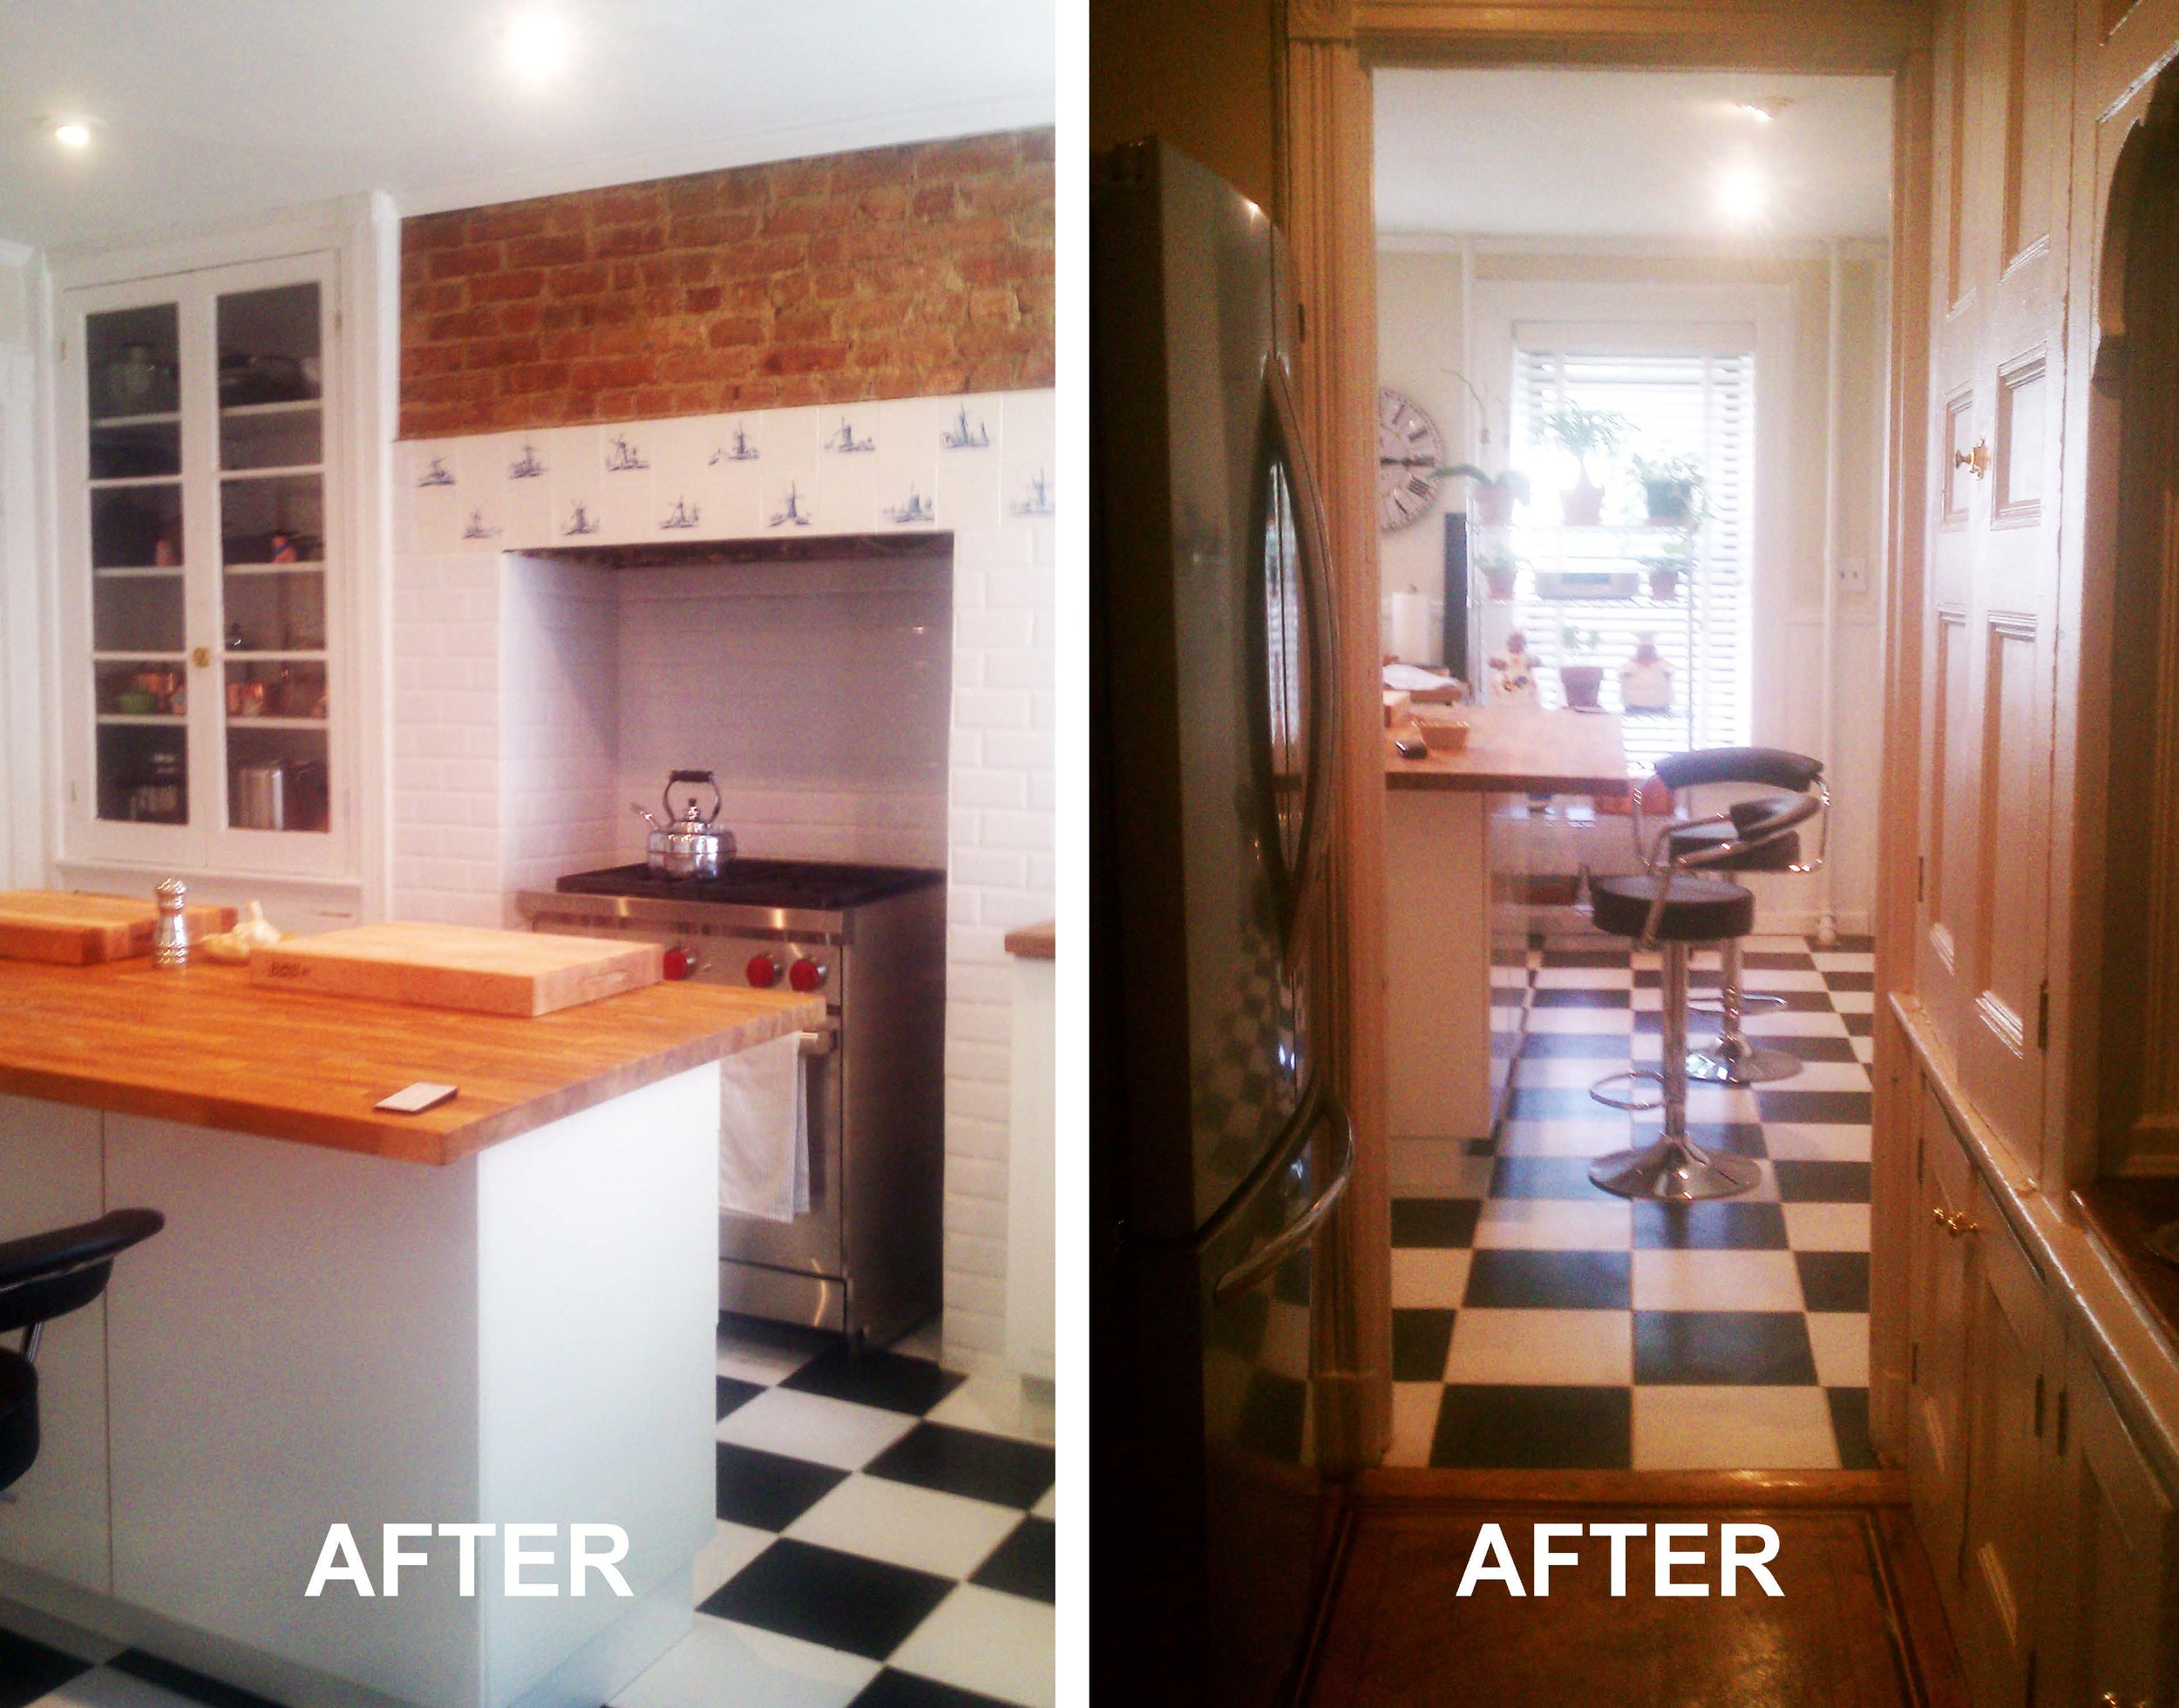 BEFORE AND AFTER PHOTOS_Page_5.jpg